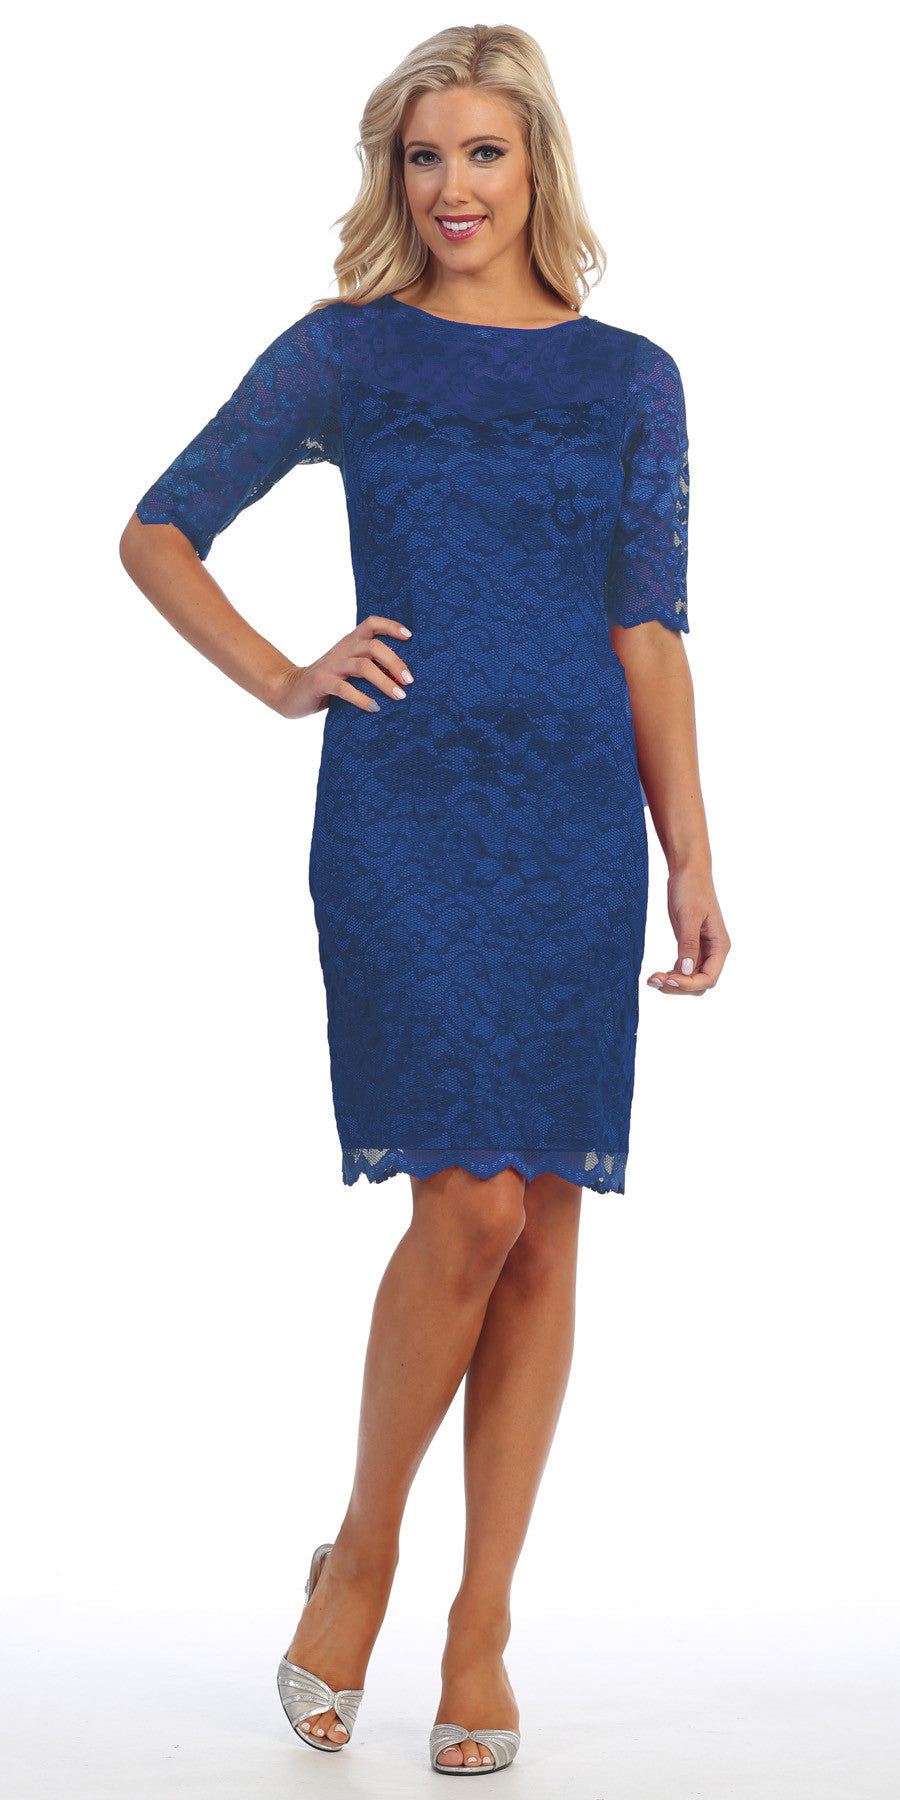 Lace Cocktail Dress Knee Length Royal Blue 3/4 Length Sleeves